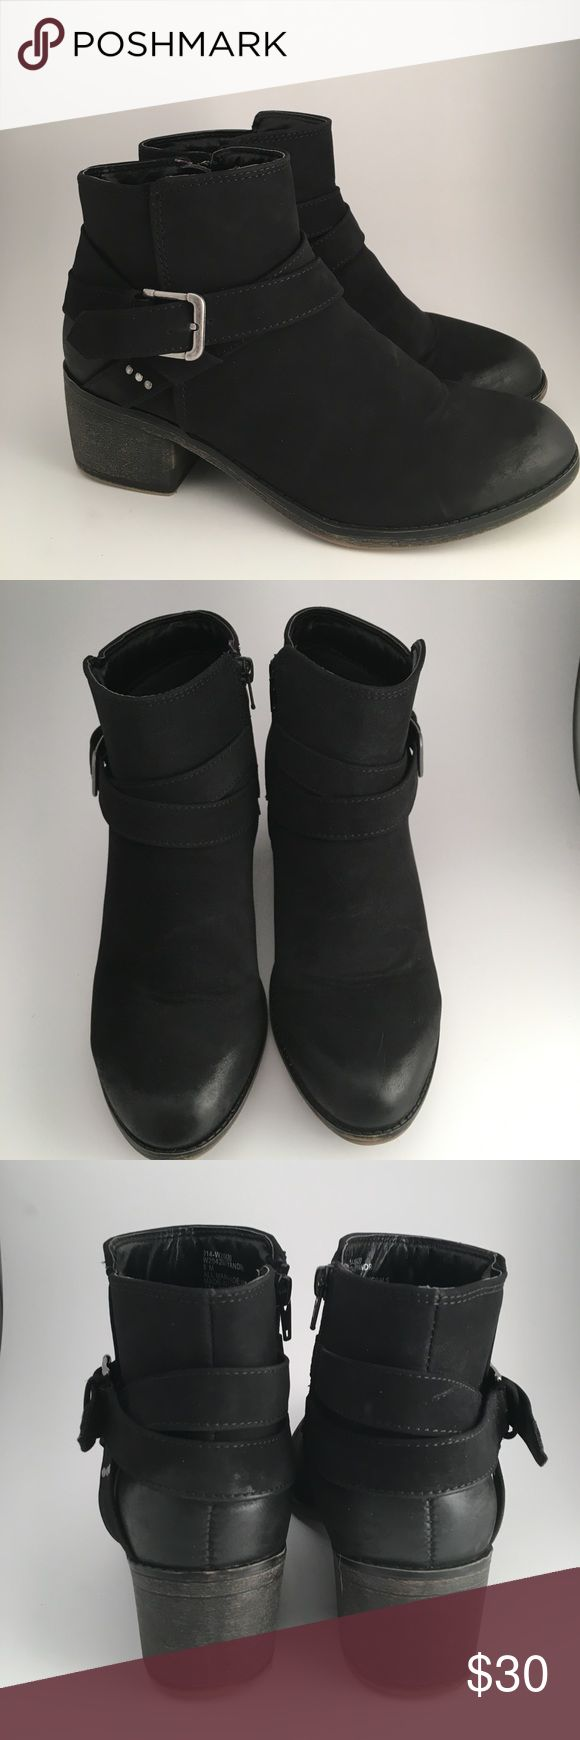 White Mountain Black Buckle Booties 🖤✨ Size 8    More details Soon!   New Item posted 2/4/18 💖✨ 👉No Trades White Mountain Shoes Ankle Boots & Booties